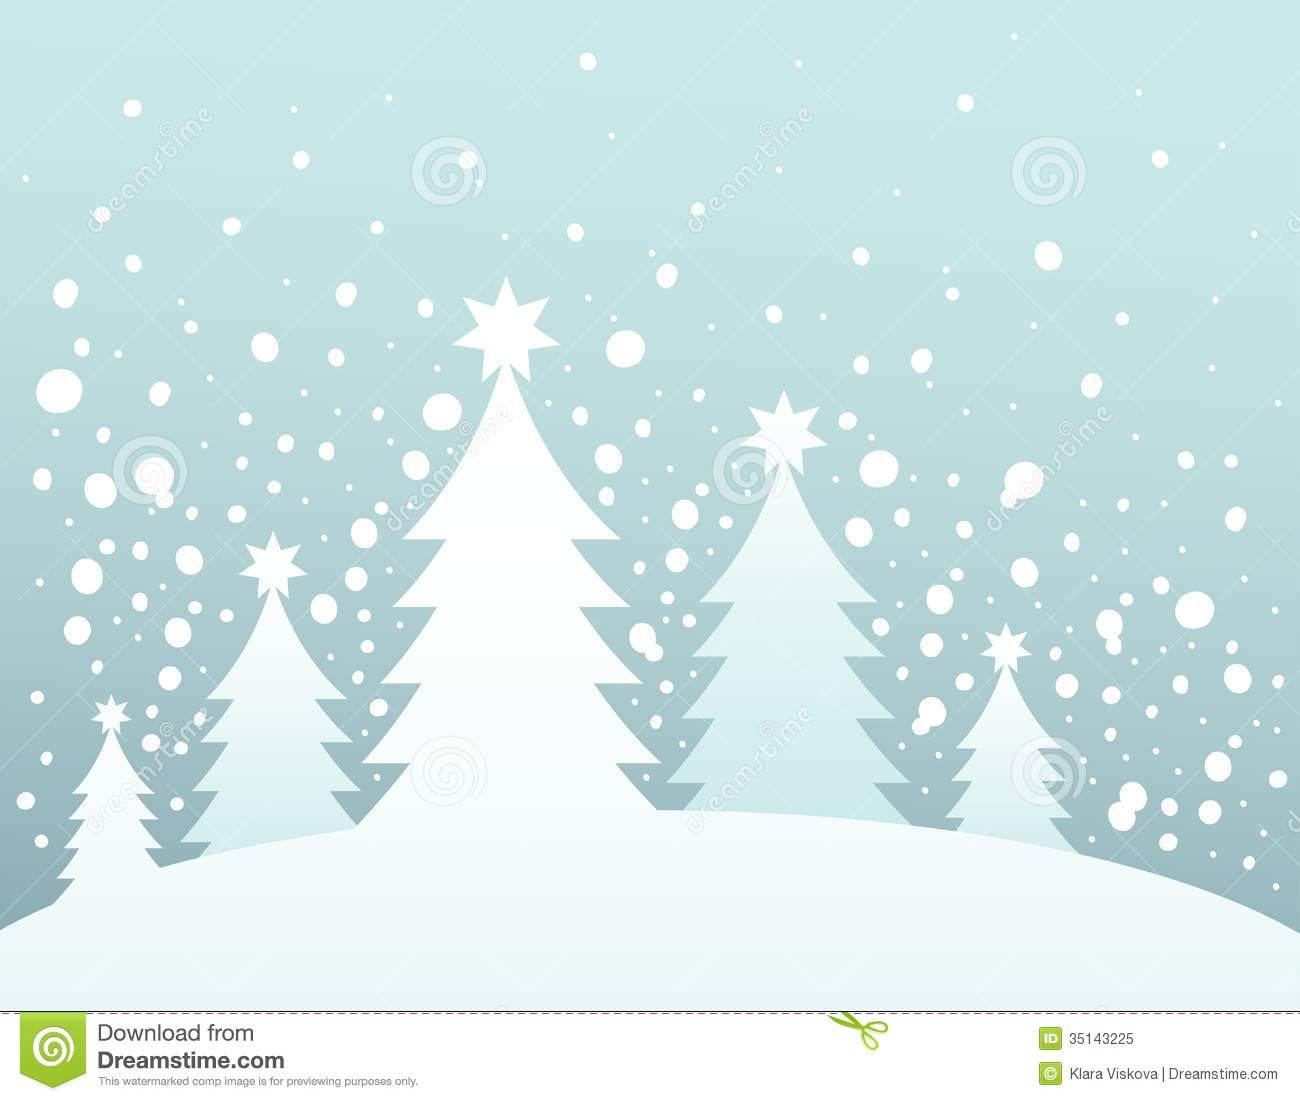 Christmas Trees Silhouette.Christmas Tree Silhouette Topic 3 Stock Vector